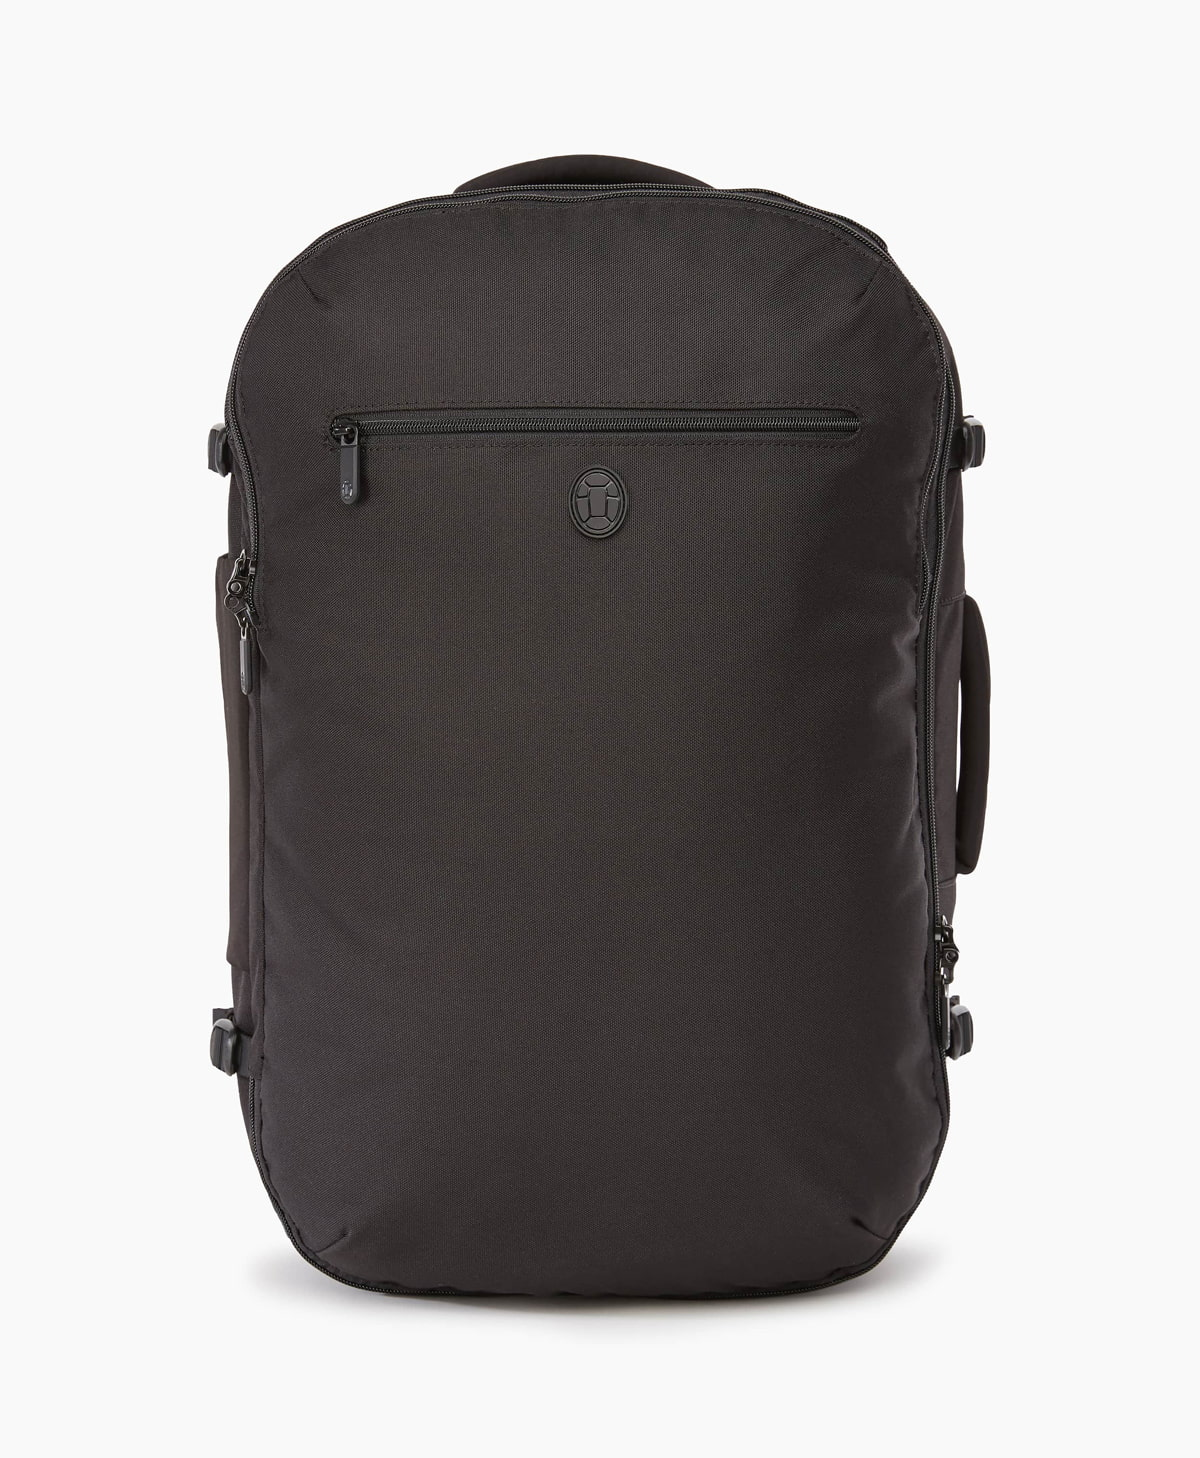 Best Carry-On Travel Backpack